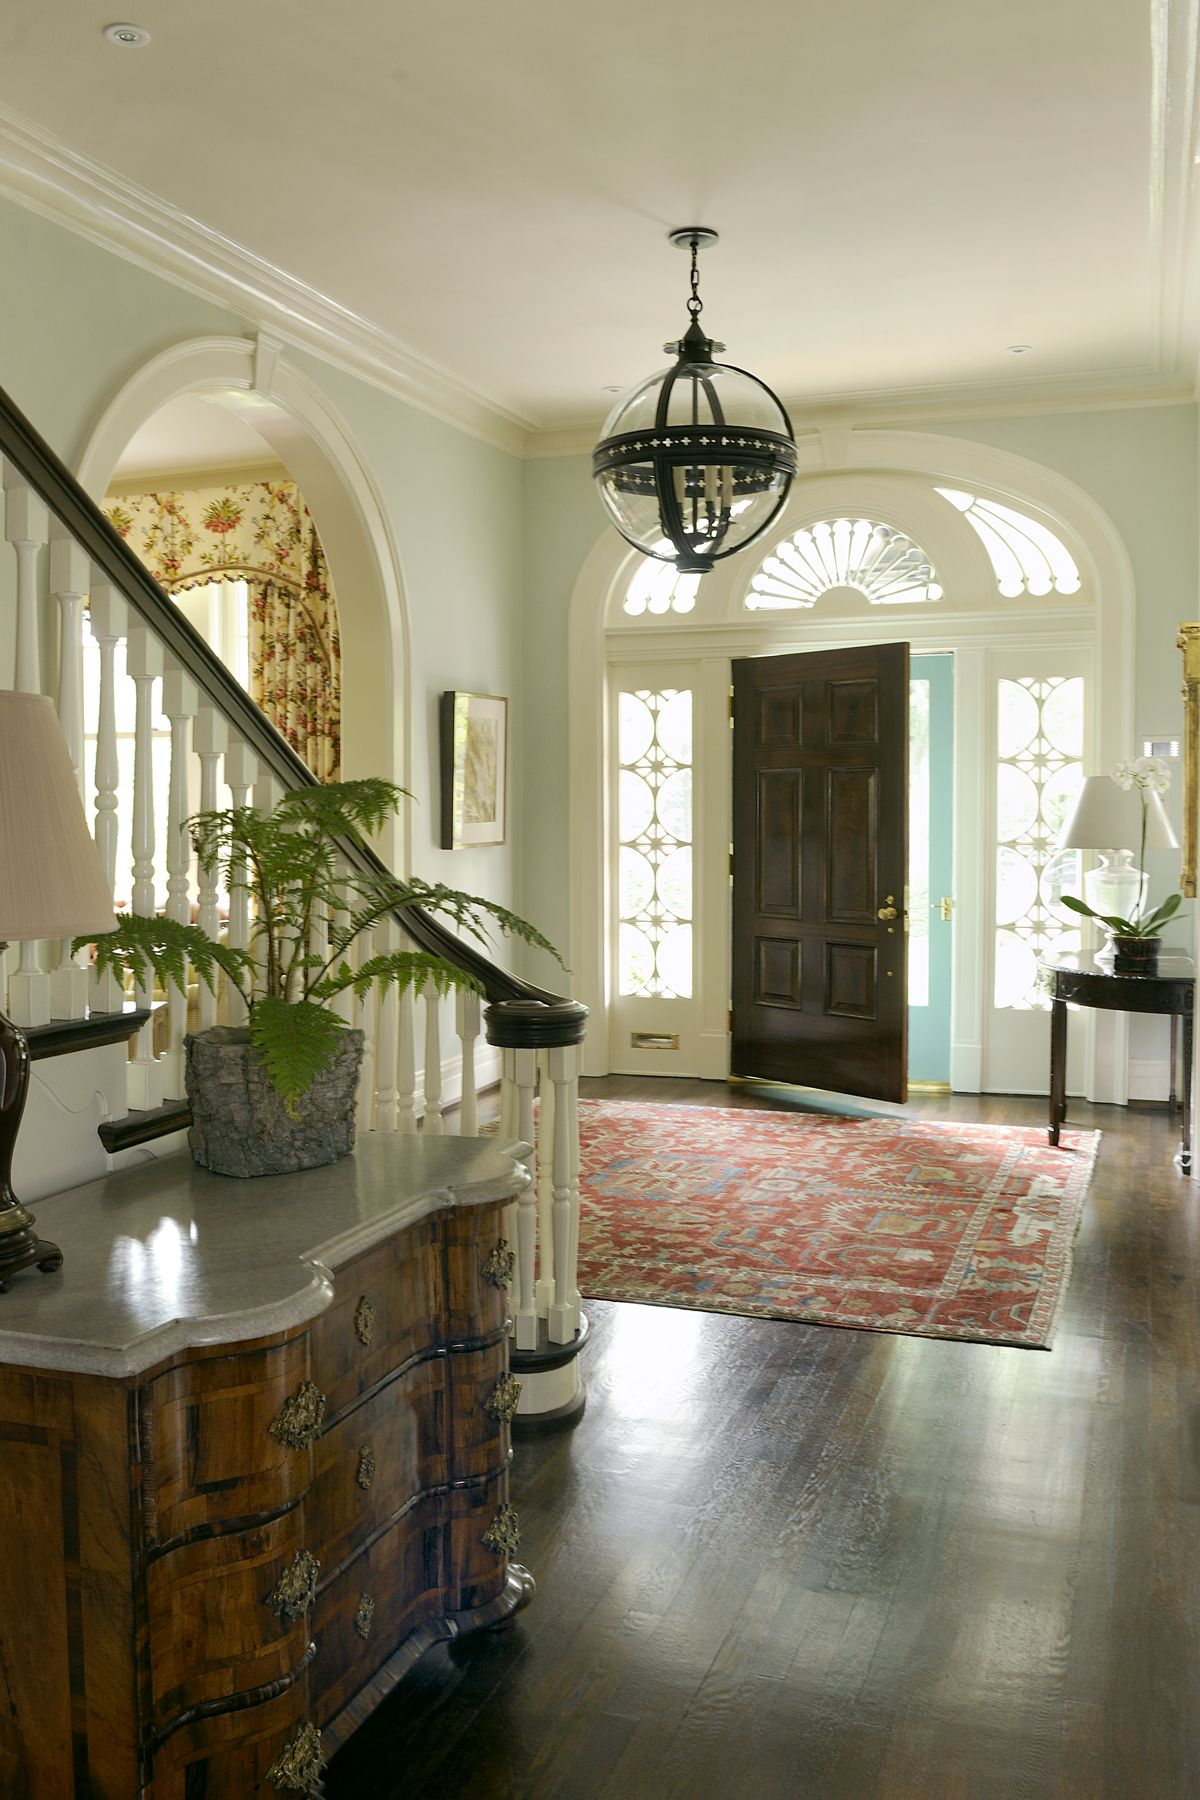 Foyer Grand Large : Love this foyer quite a grand entrance great rug and